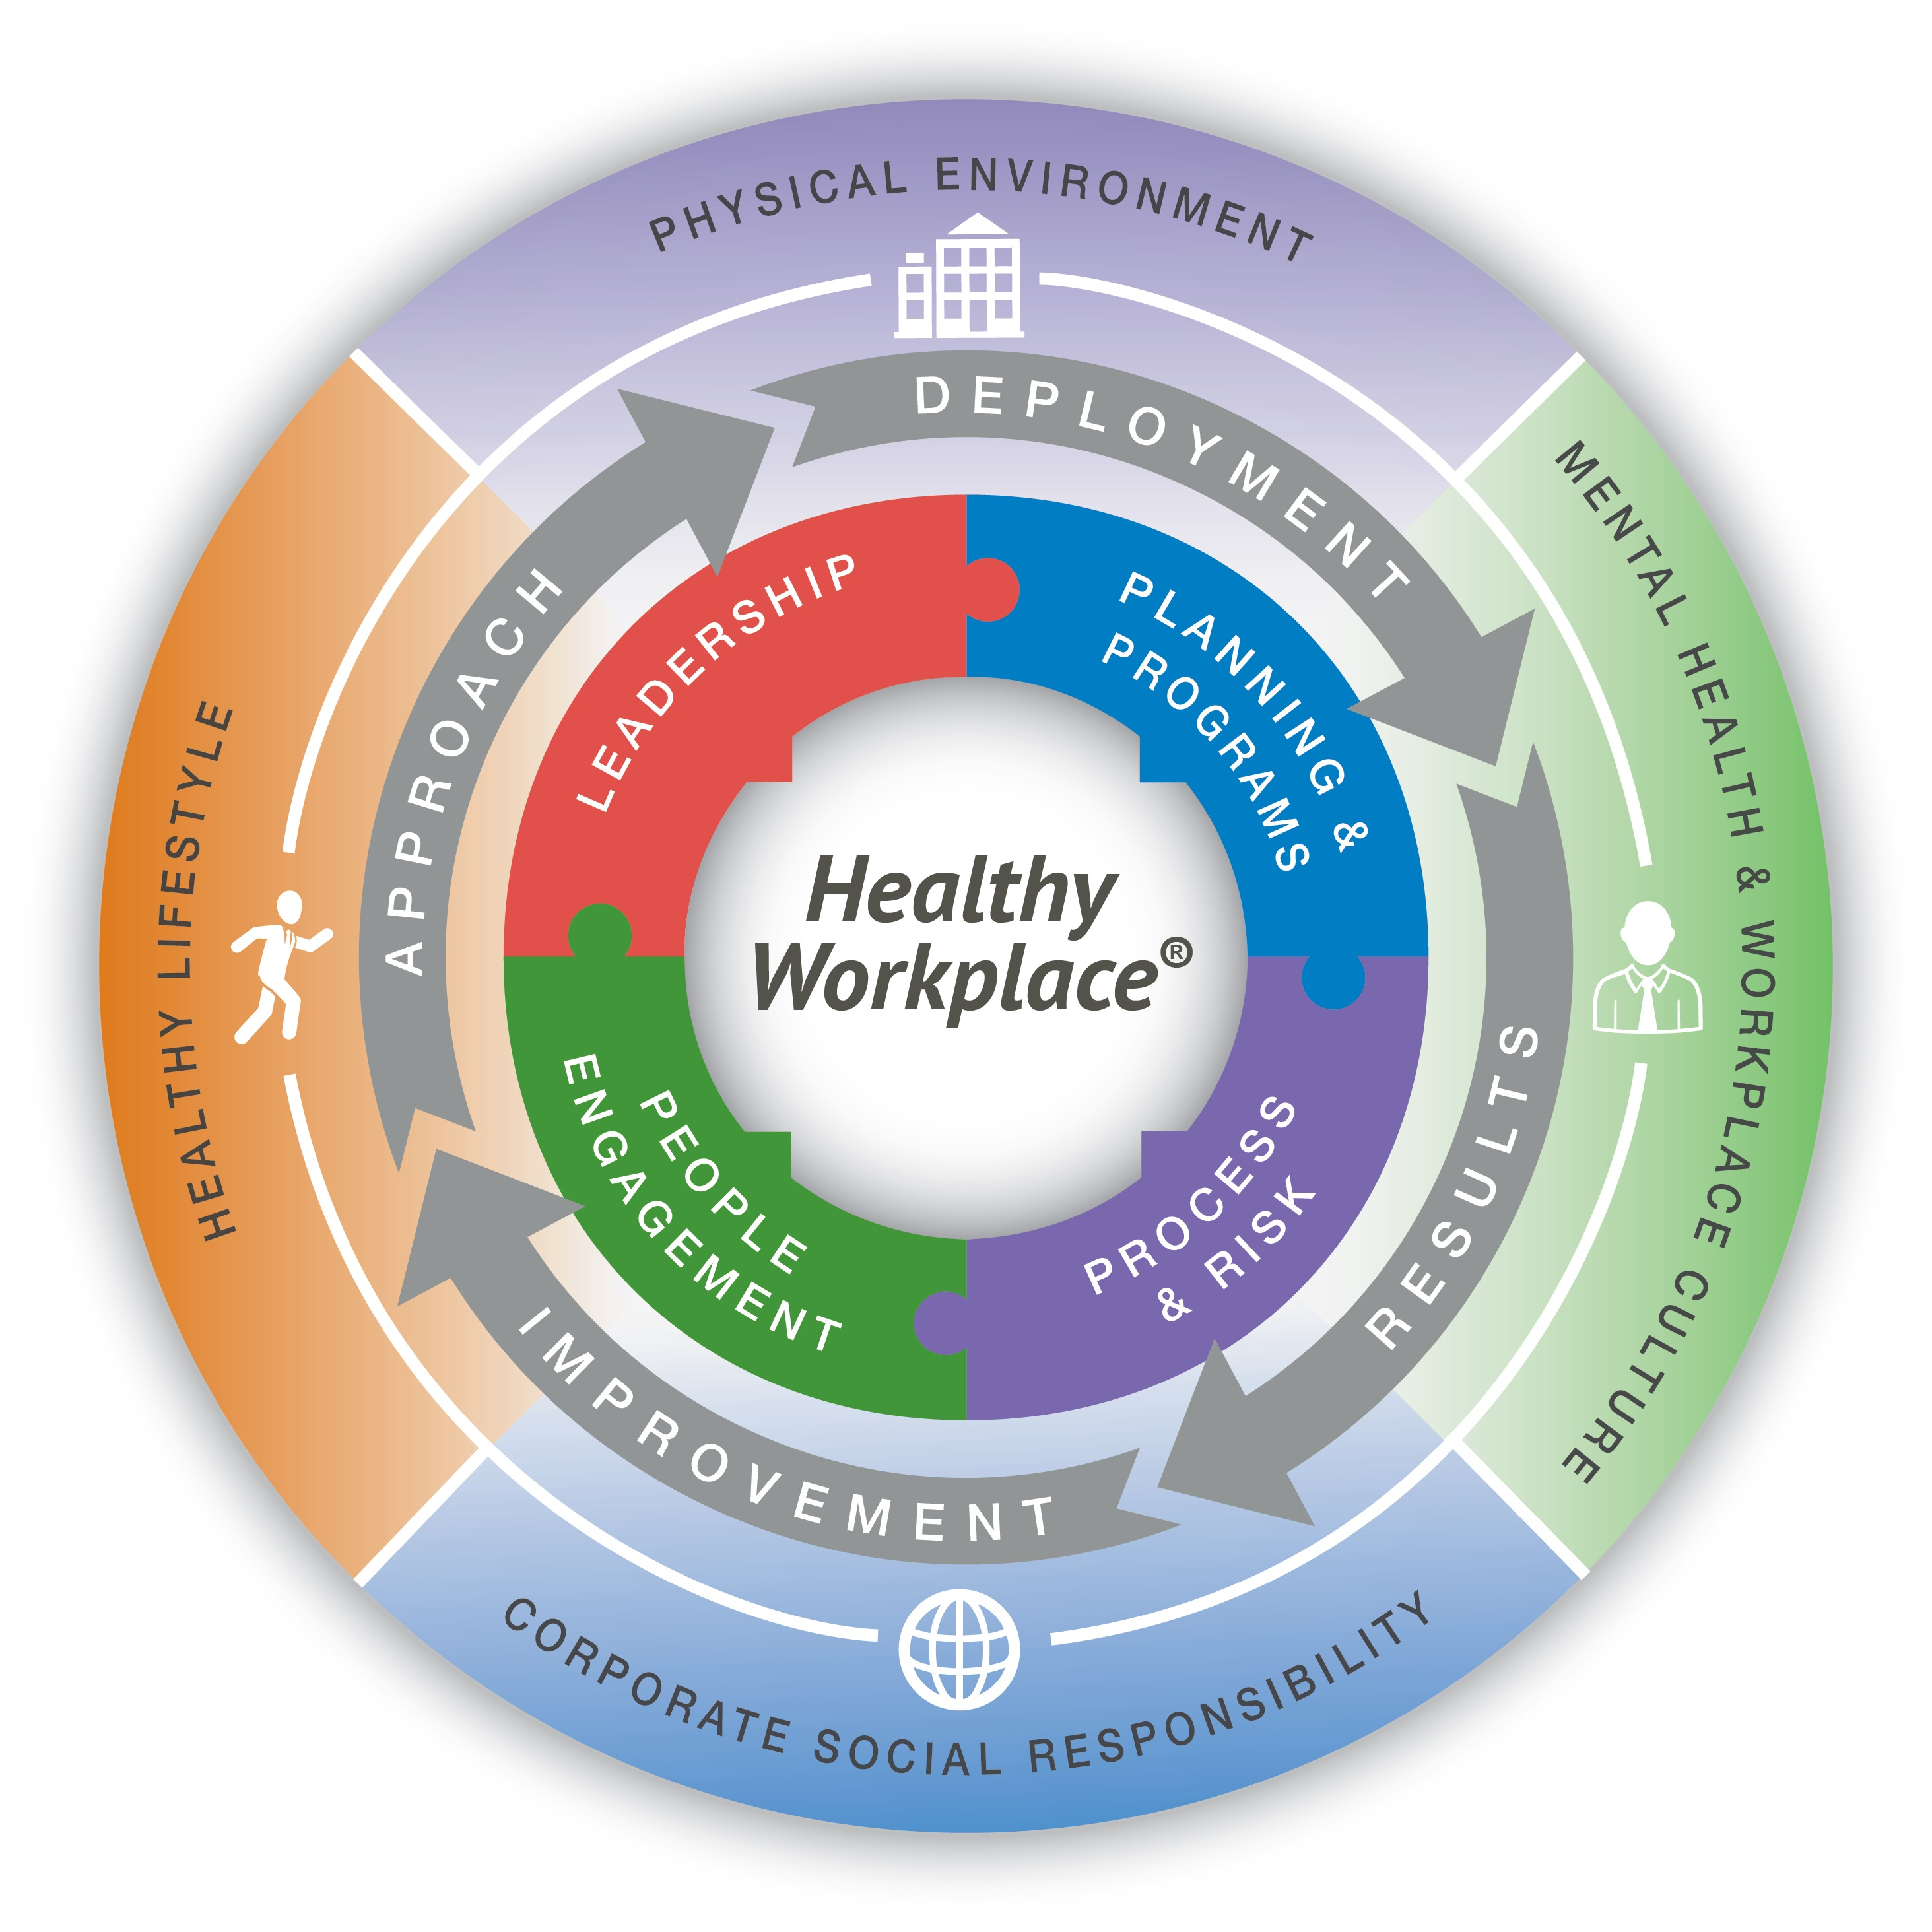 bct year 11 workplace health Wc-bct menu what you should know if you want to maintain good health into your later years the role of education and awareness in preventing workplace.